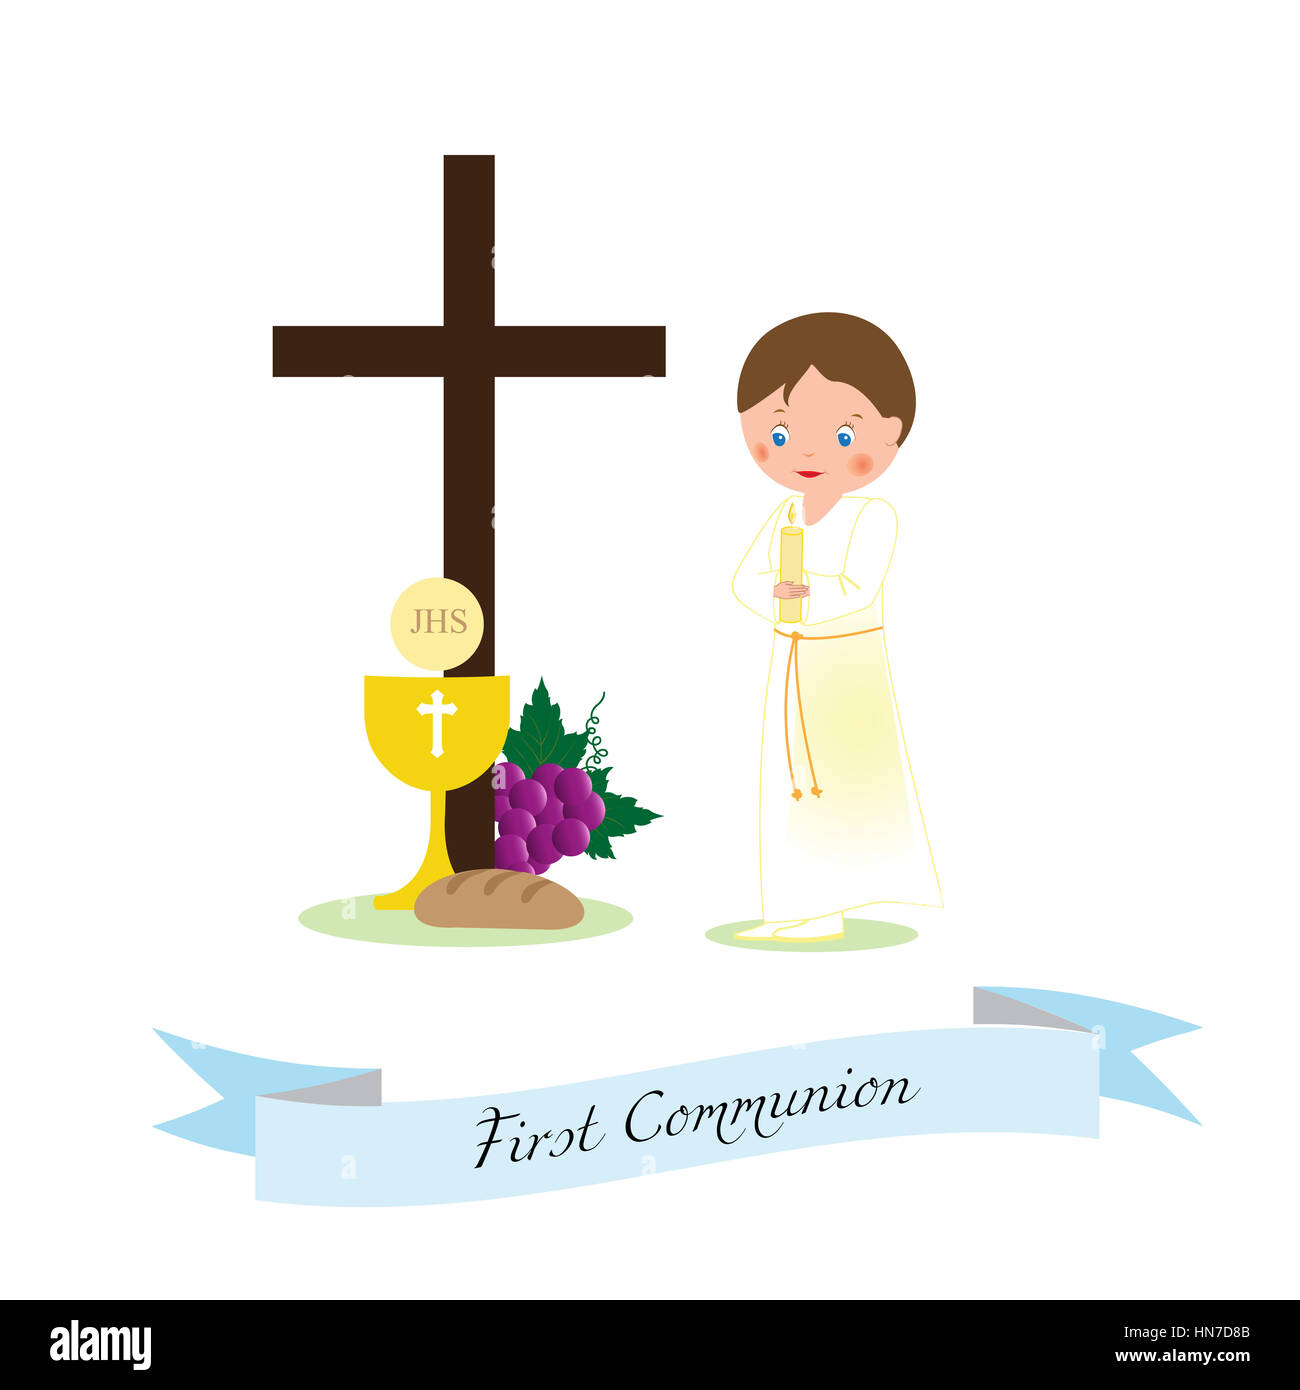 my first communion boy in a white rope stock photo holy communion clip art images holy communion clipart for bulletin cover